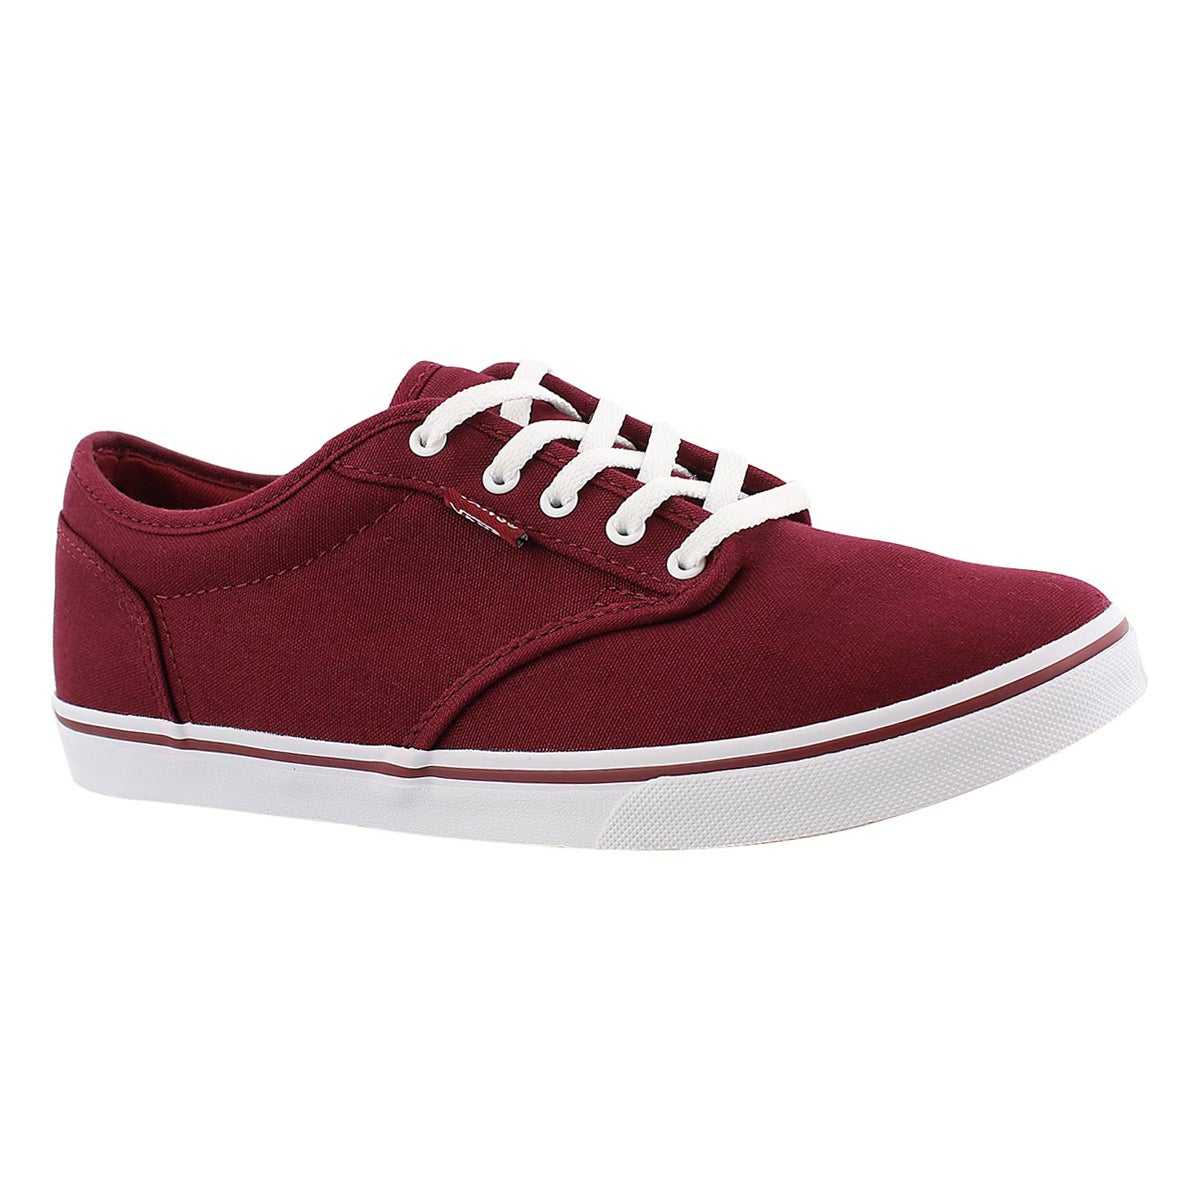 Women's ATWOOD LOW burgundy lace up sneakers